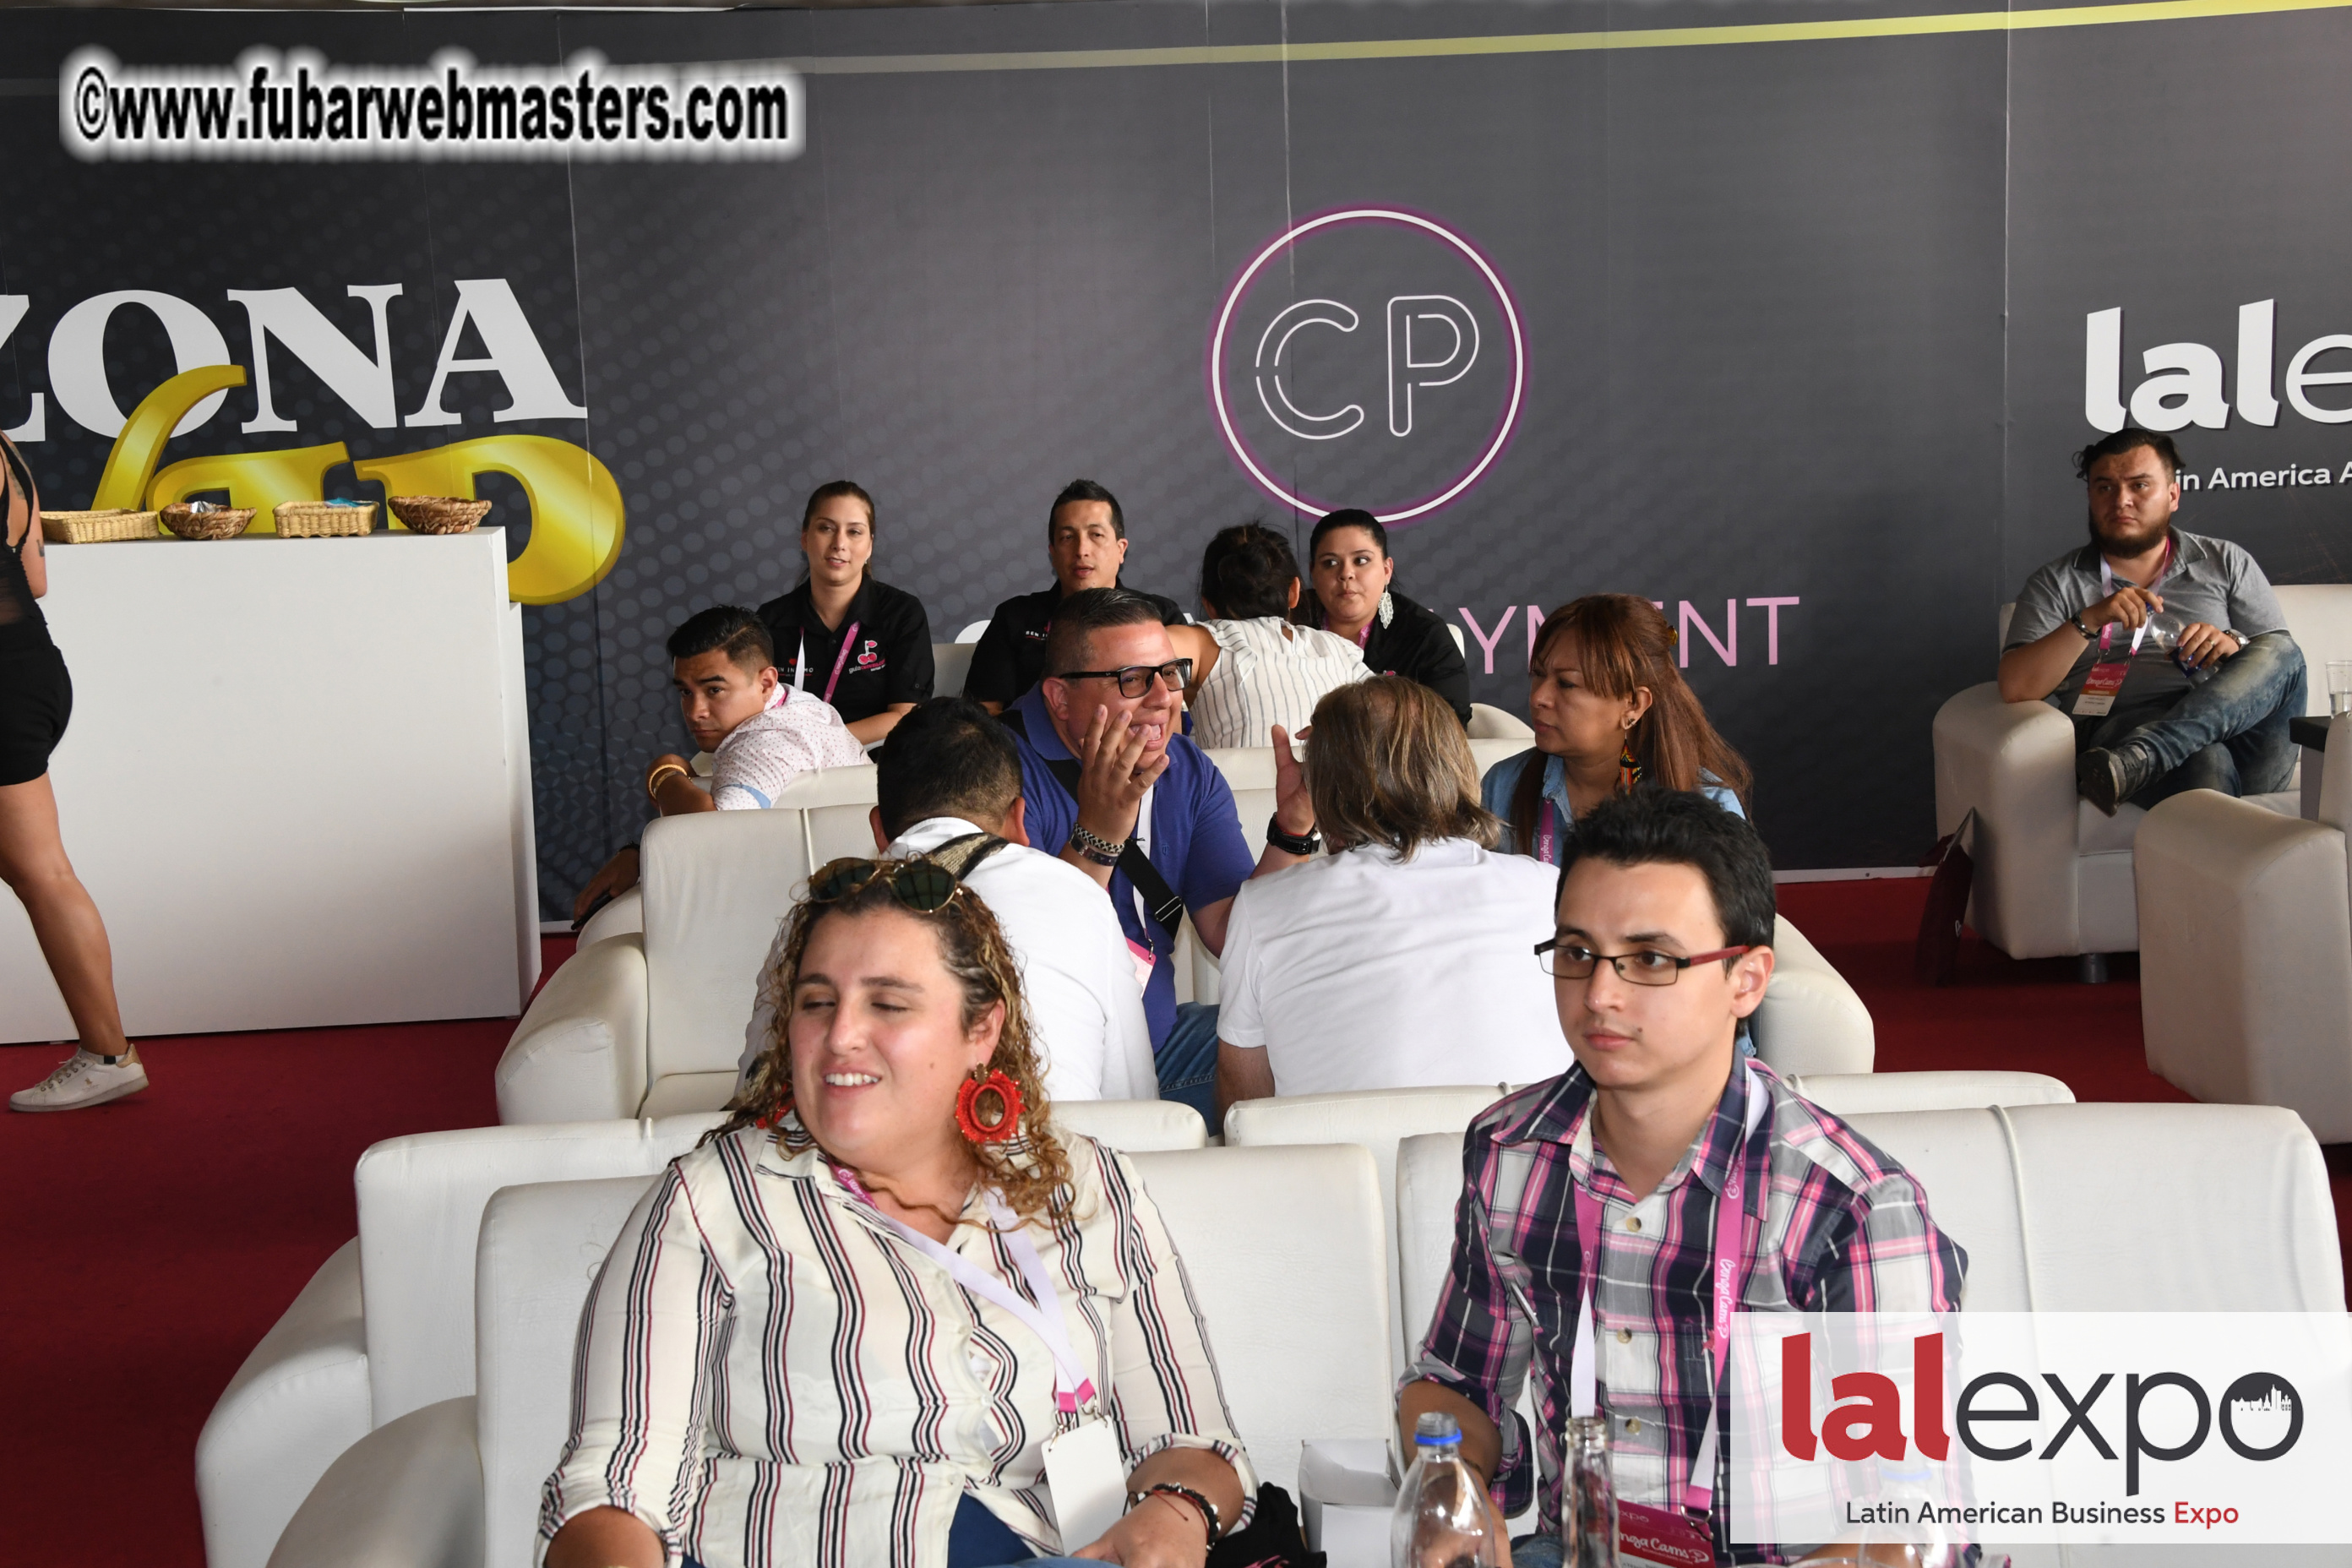 Adult novelty/toy industry Speed Networking and Meet-up